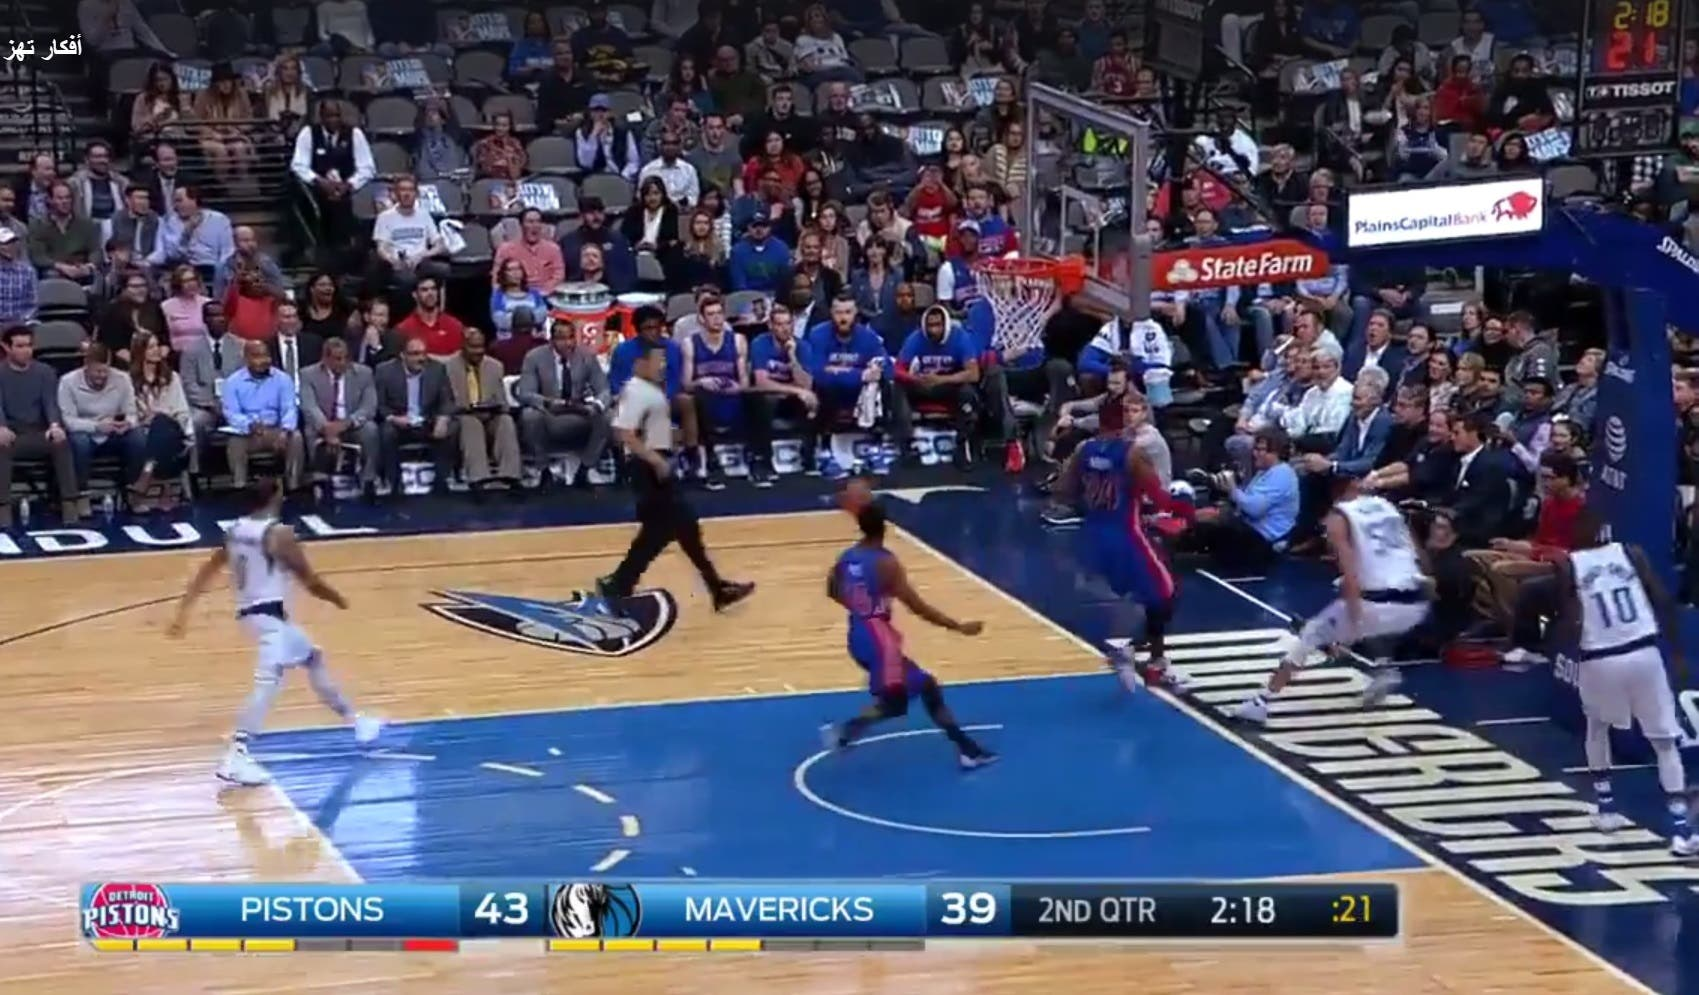 The crowd goes wild as Mejri drops to the ground and Harris looks on. (Screengrab)